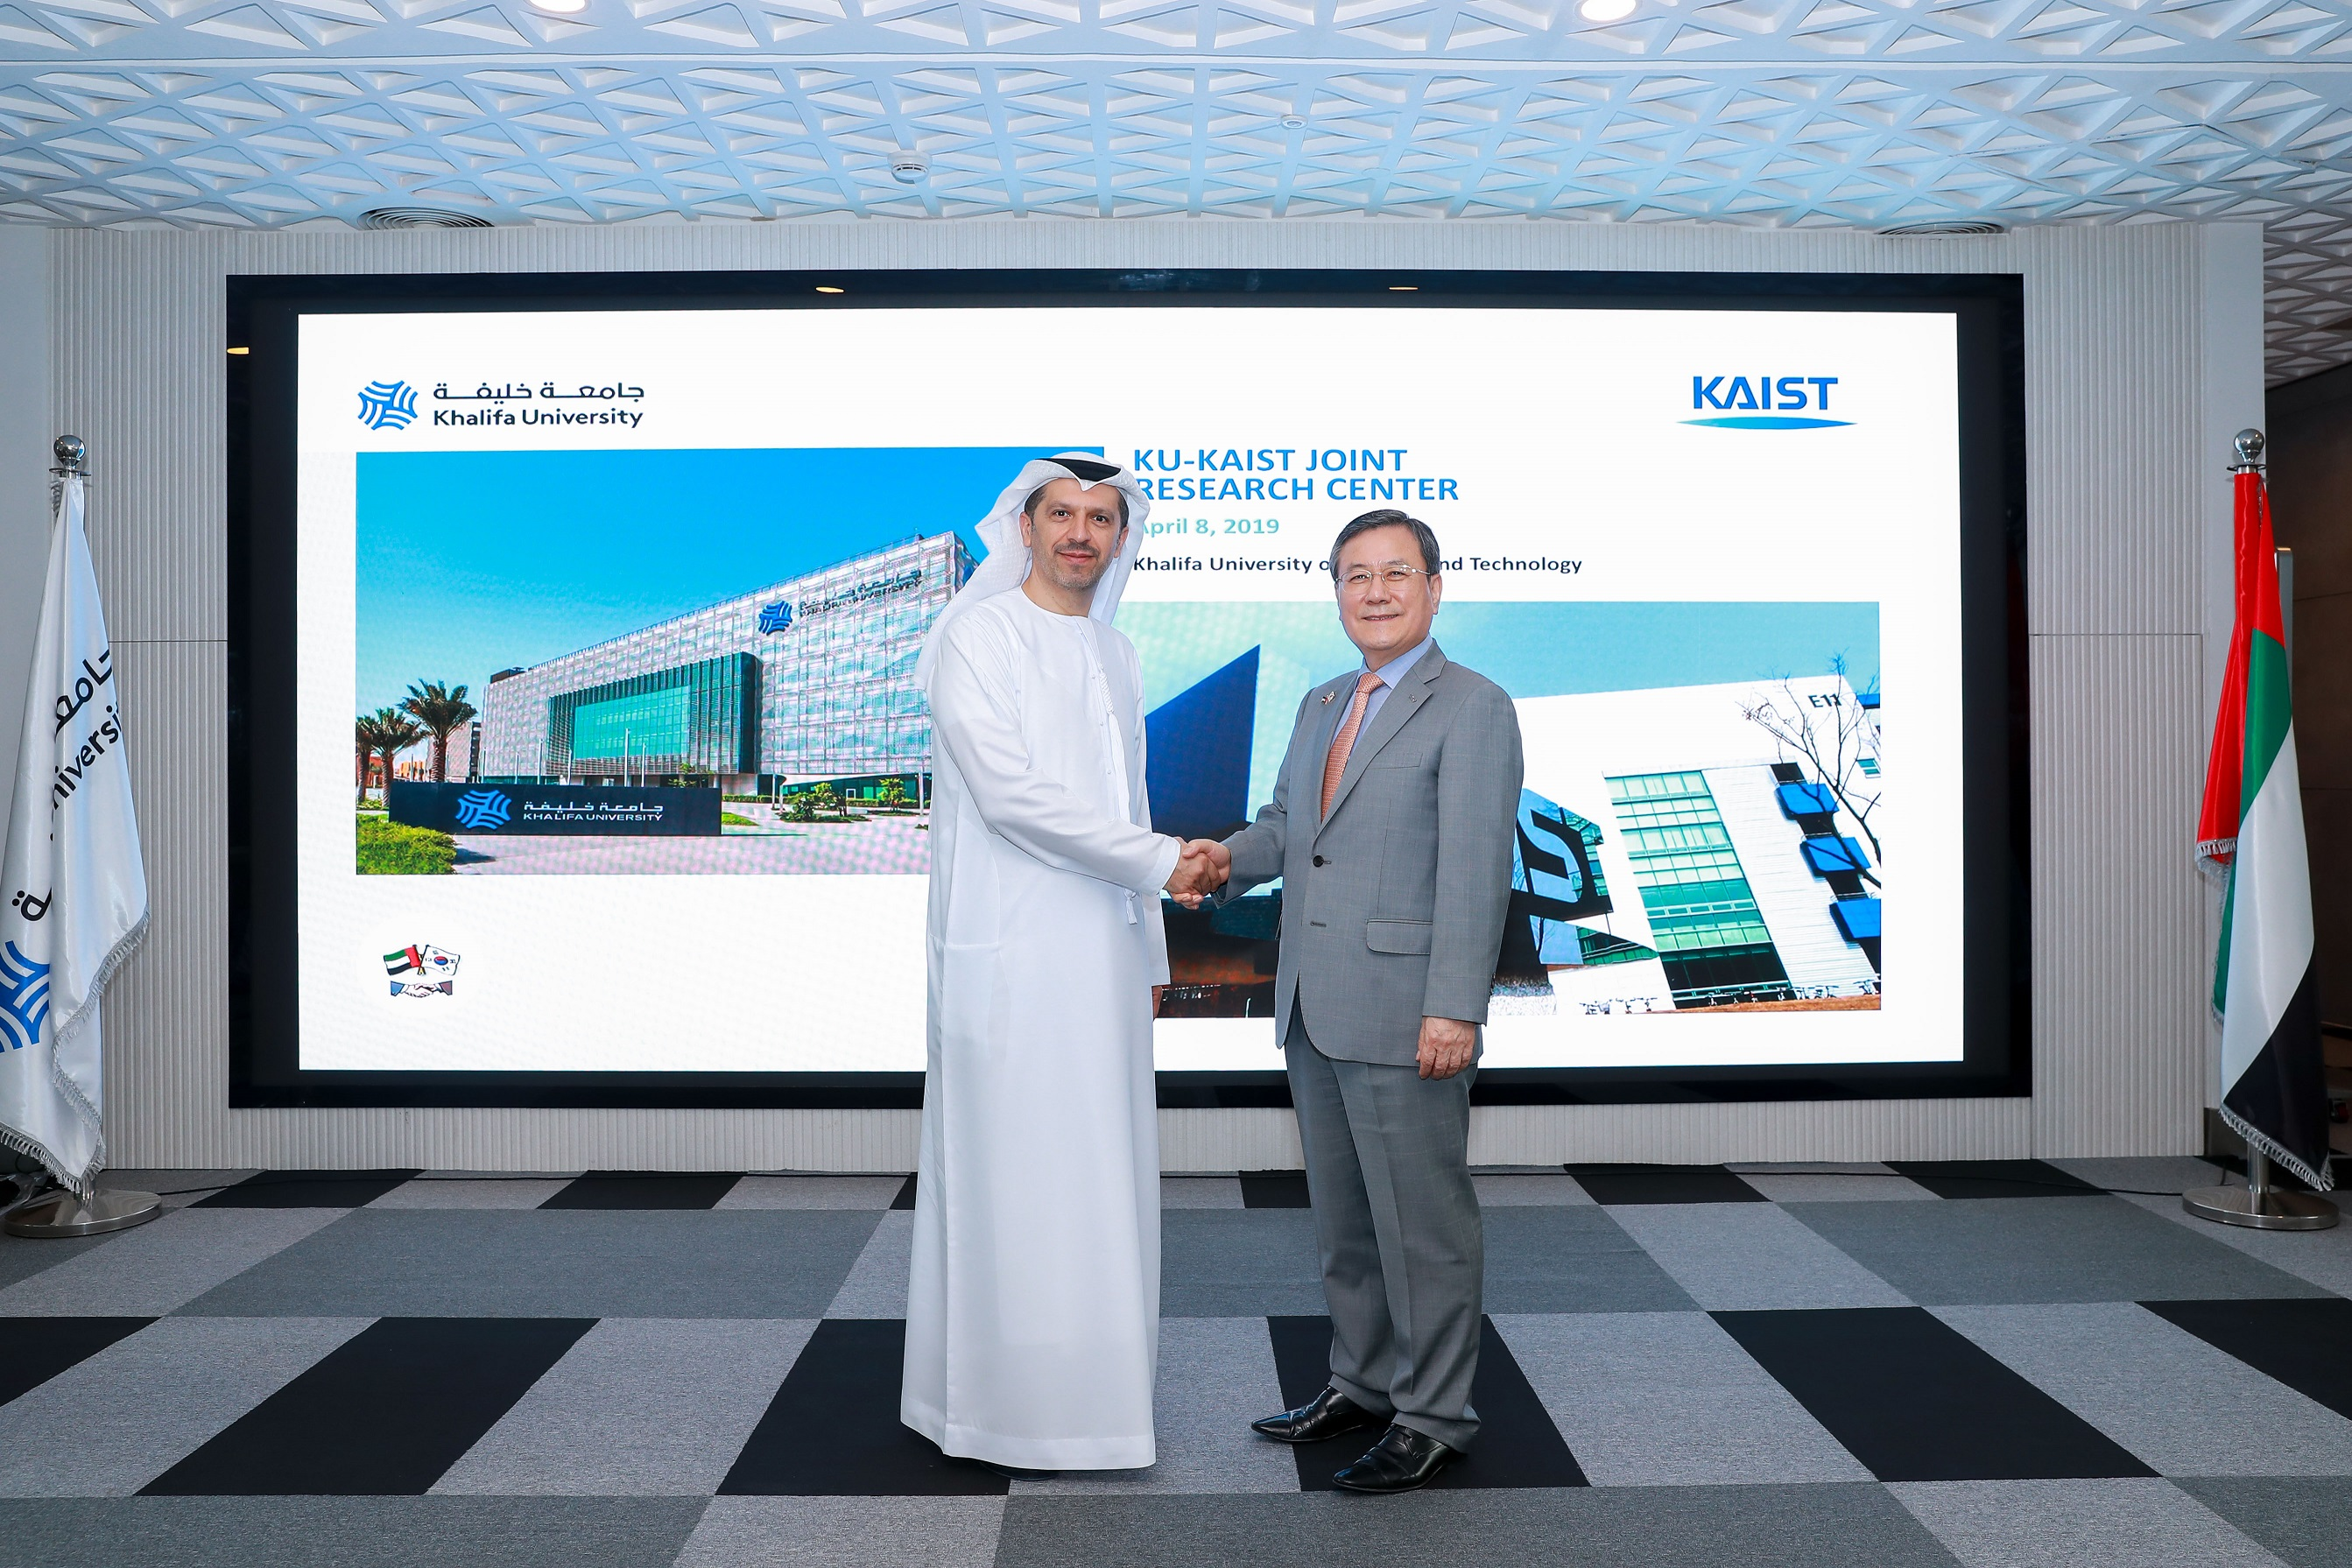 Khalifa University and Korea Advanced Institute of Science and Technology Launch Joint Research Center in Abu Dhabi